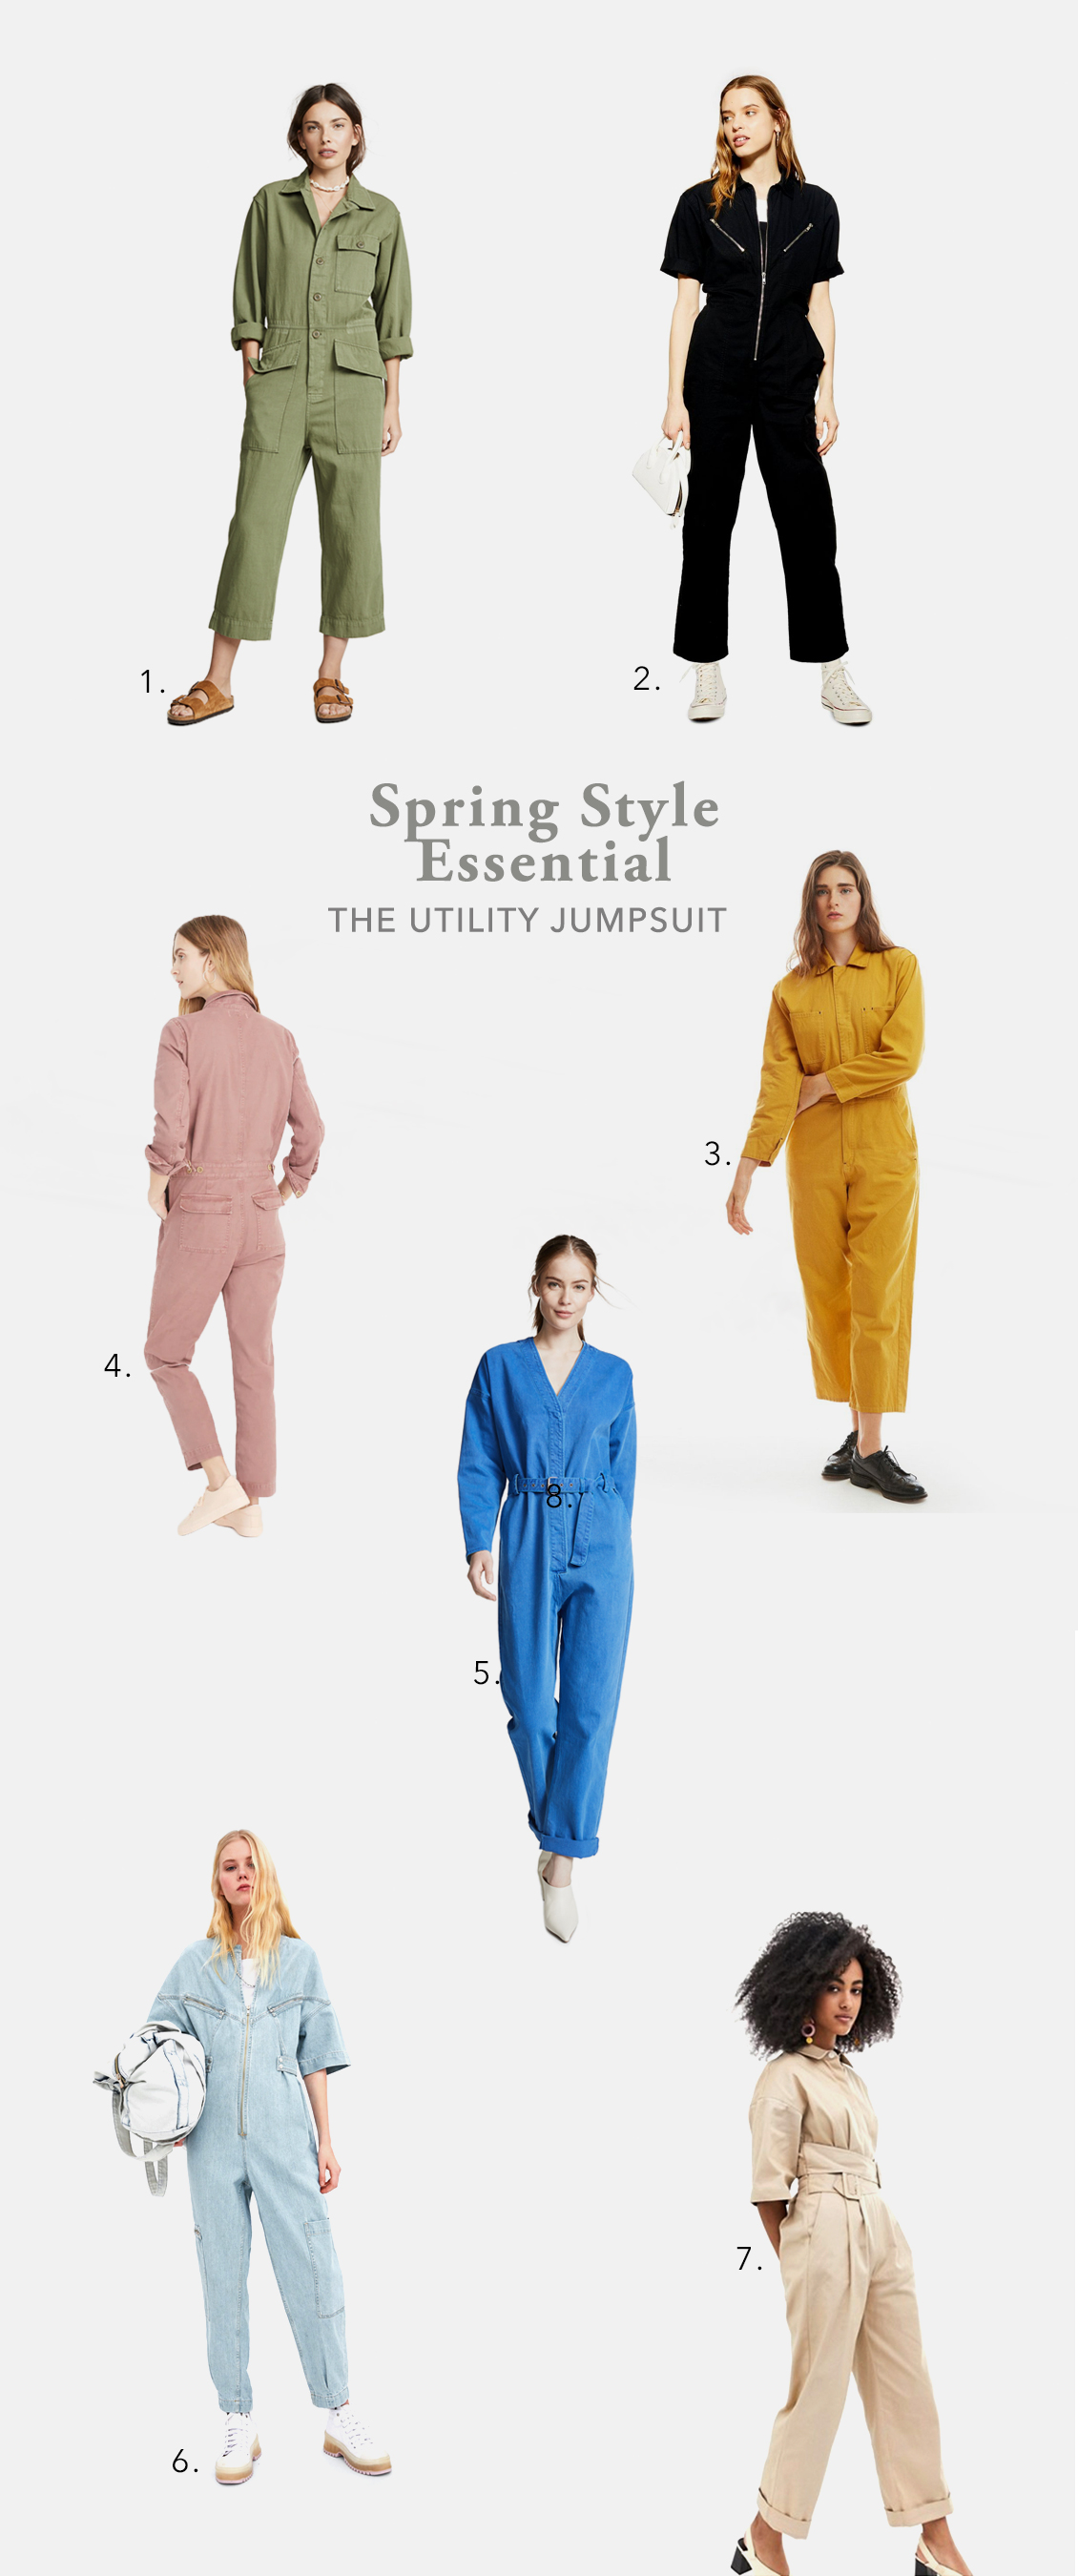 spring 2019 fashion boiler suit